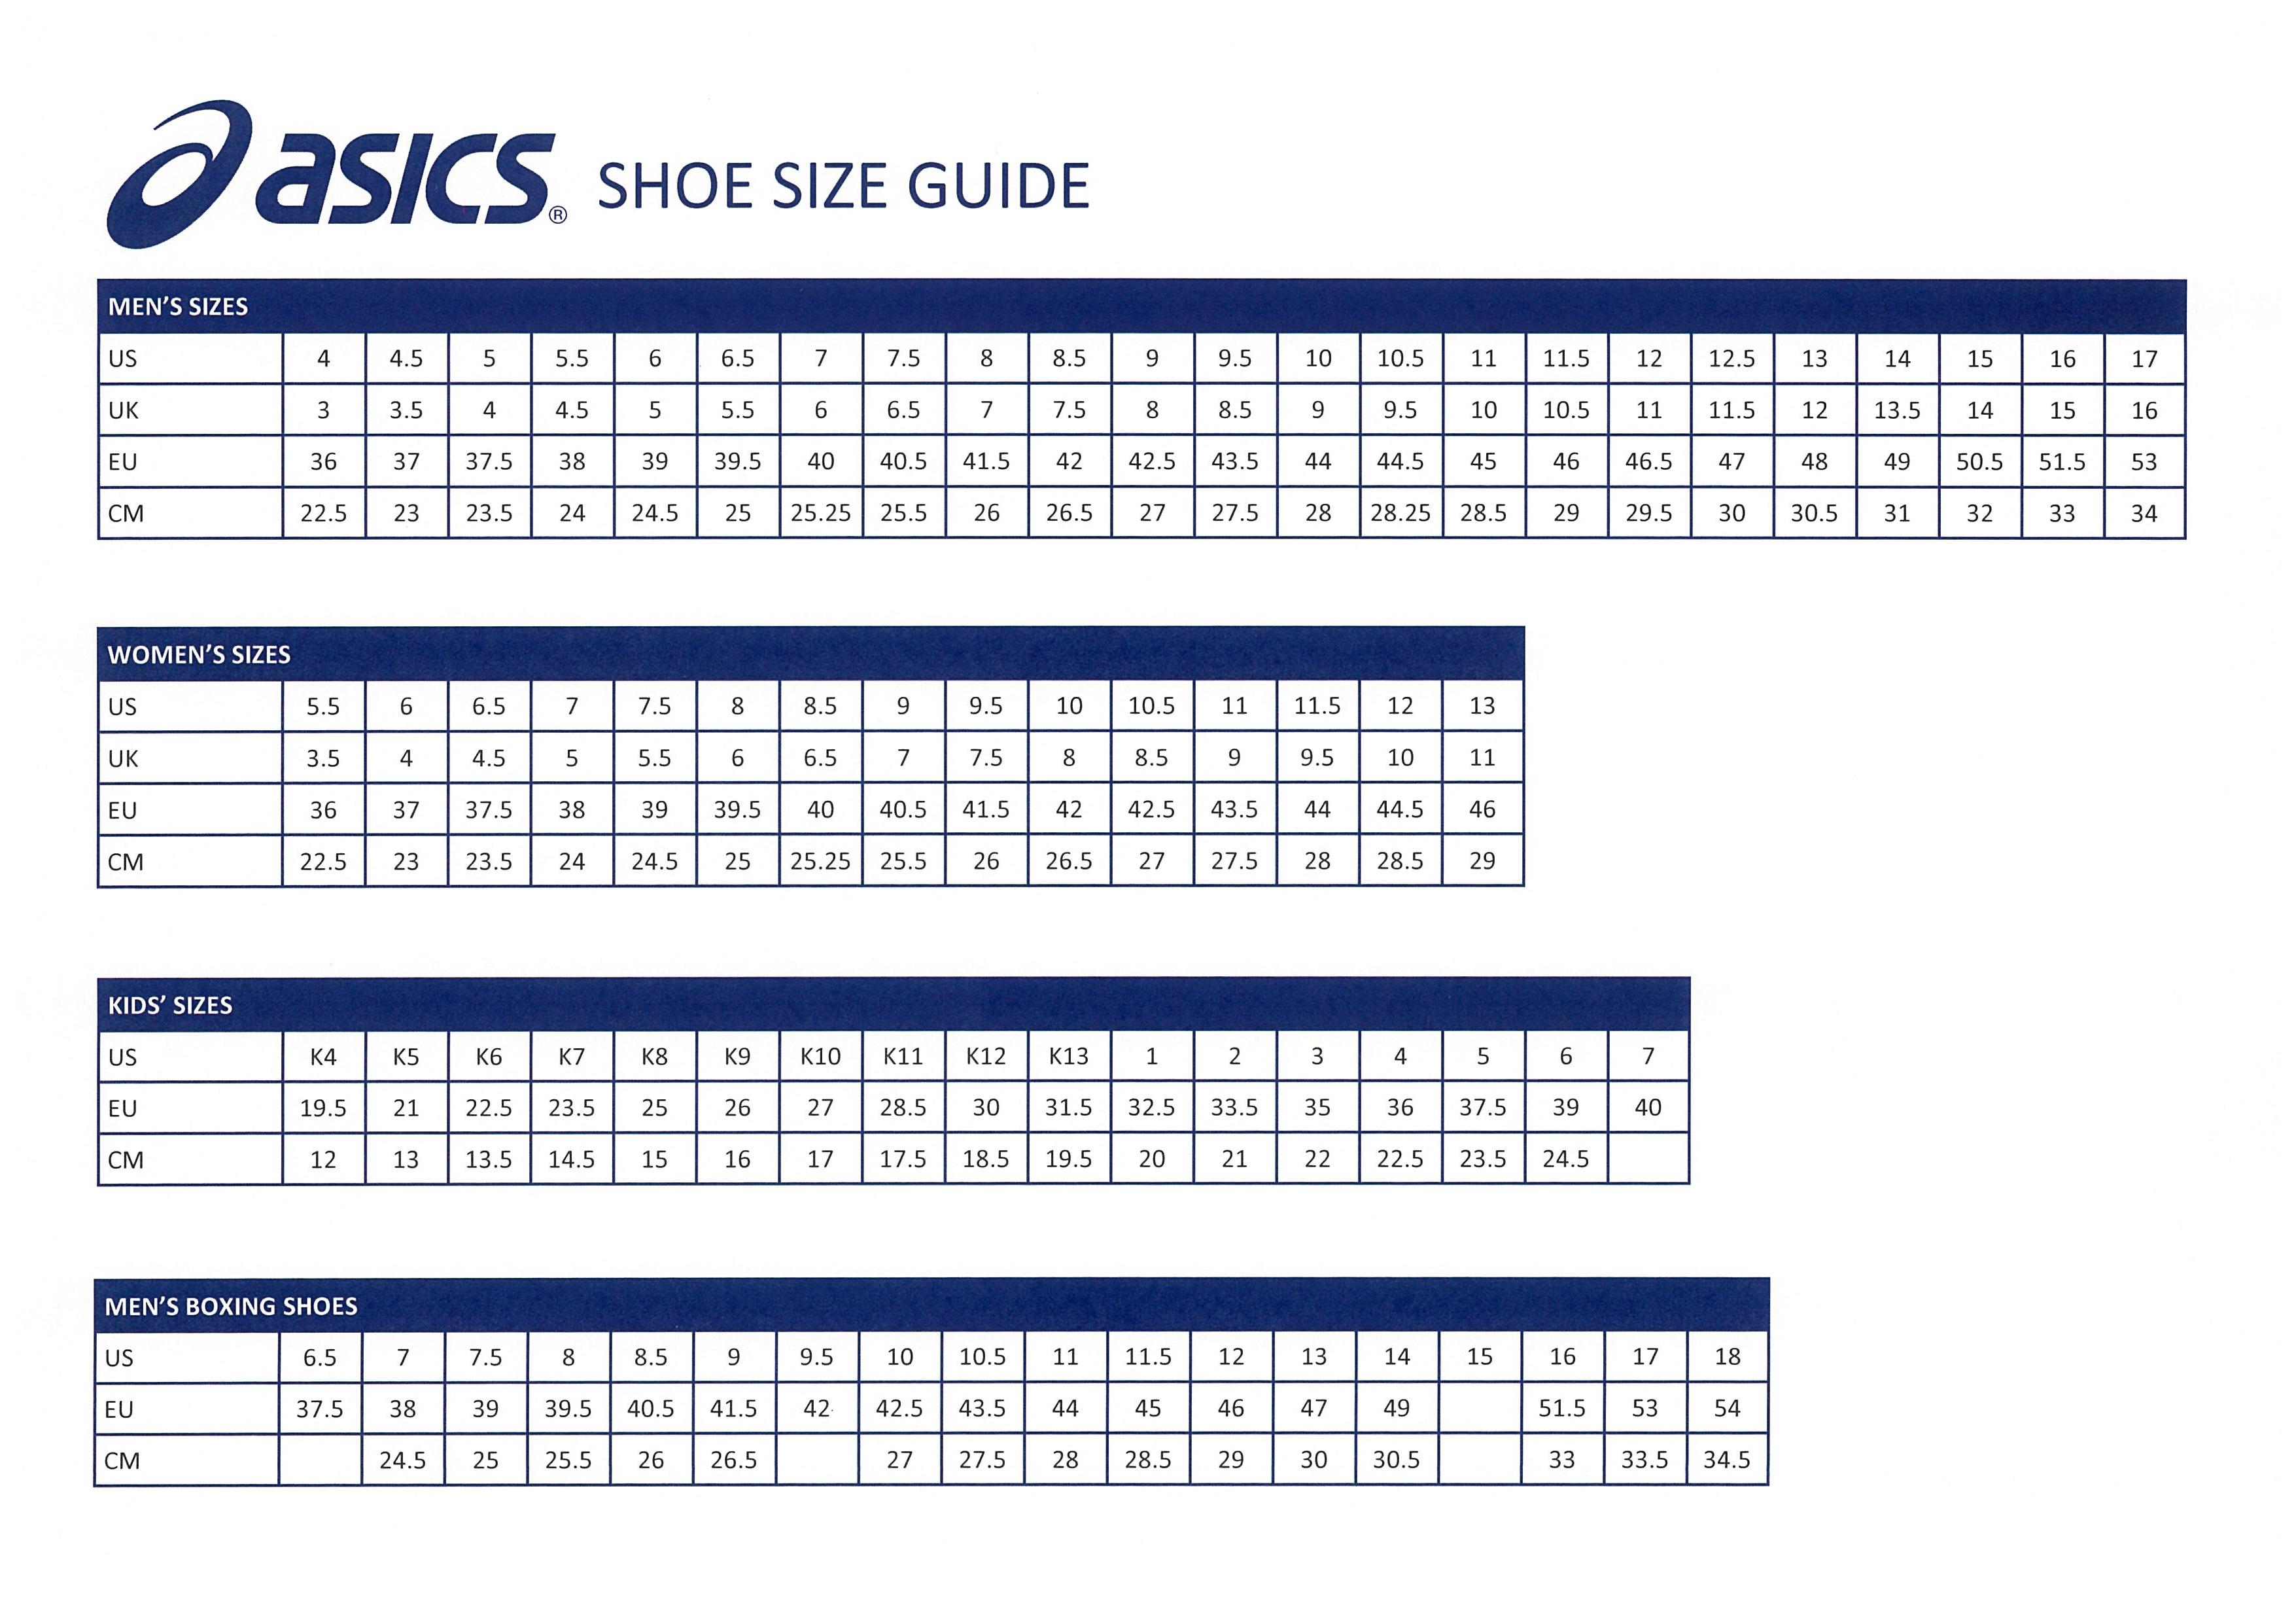 Asics Shoe Size Guide - Giri Martial Arts Supplies